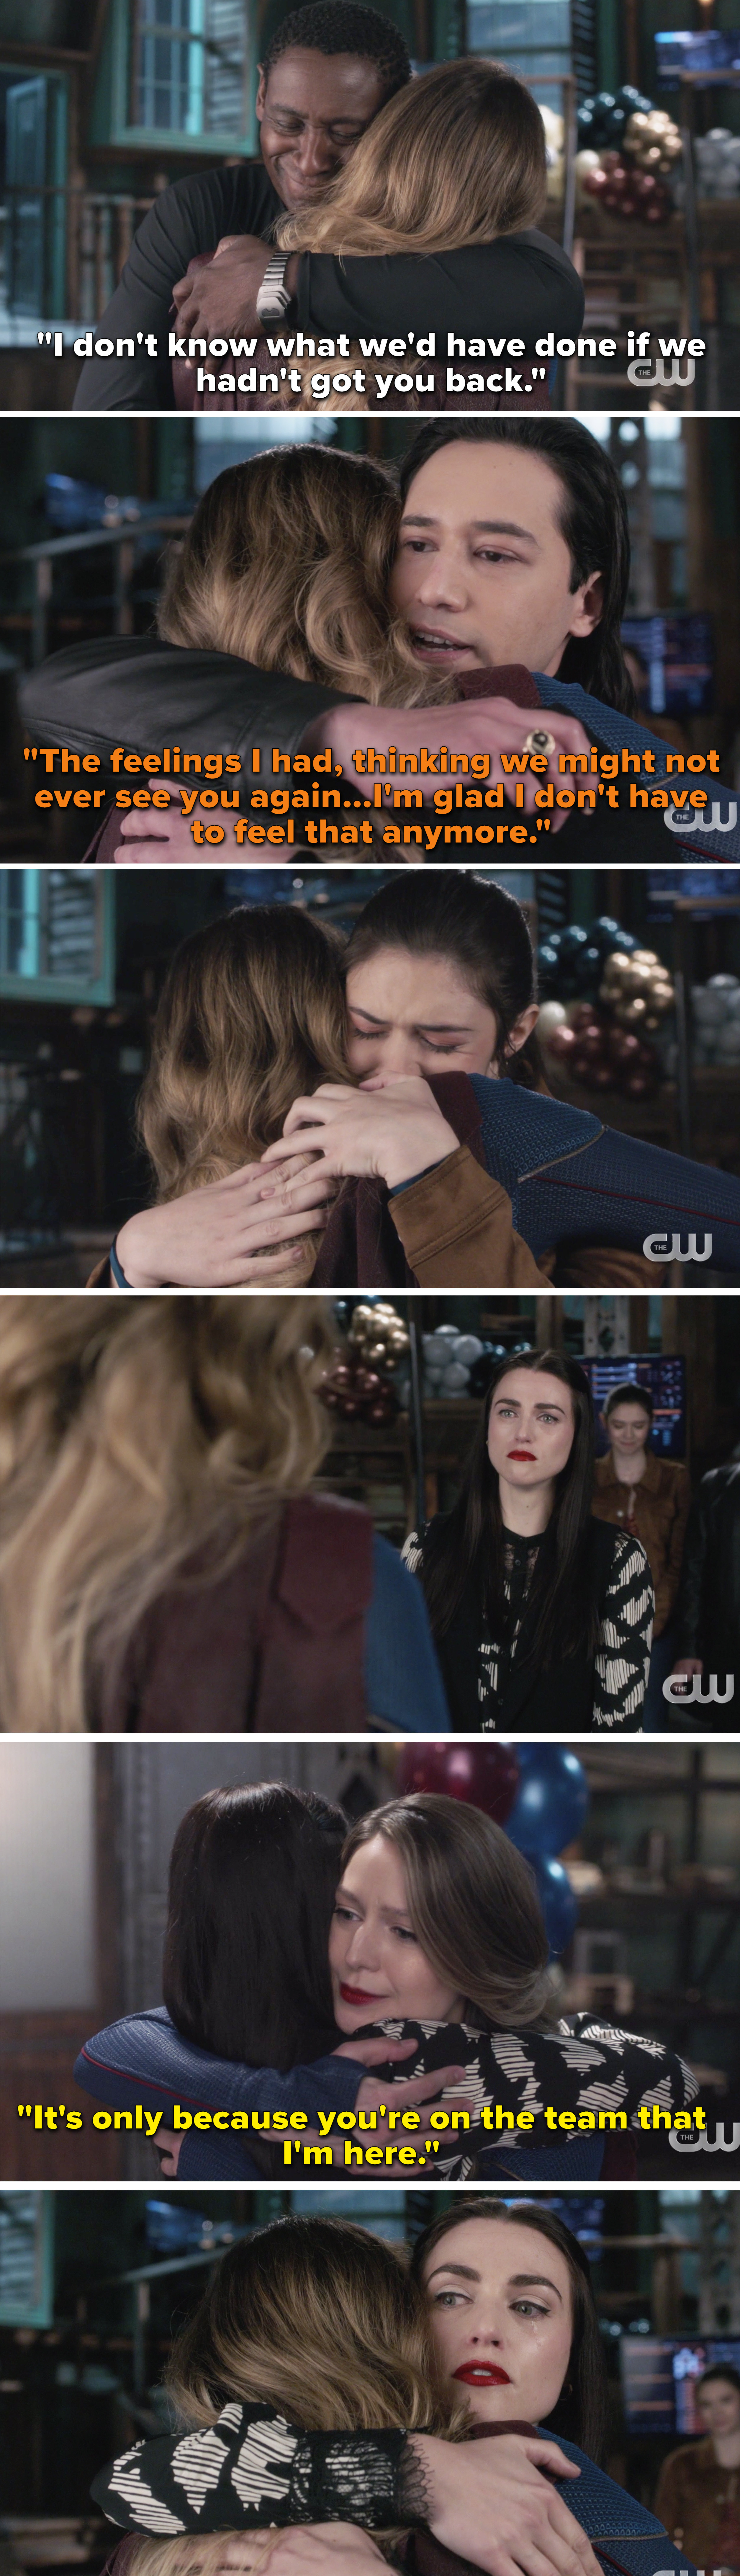 """J'onn and Brainy saying how much they missed Kara, and Kara hugging a crying Lena and saying, """"It's only because you're on the team that I'm here"""""""